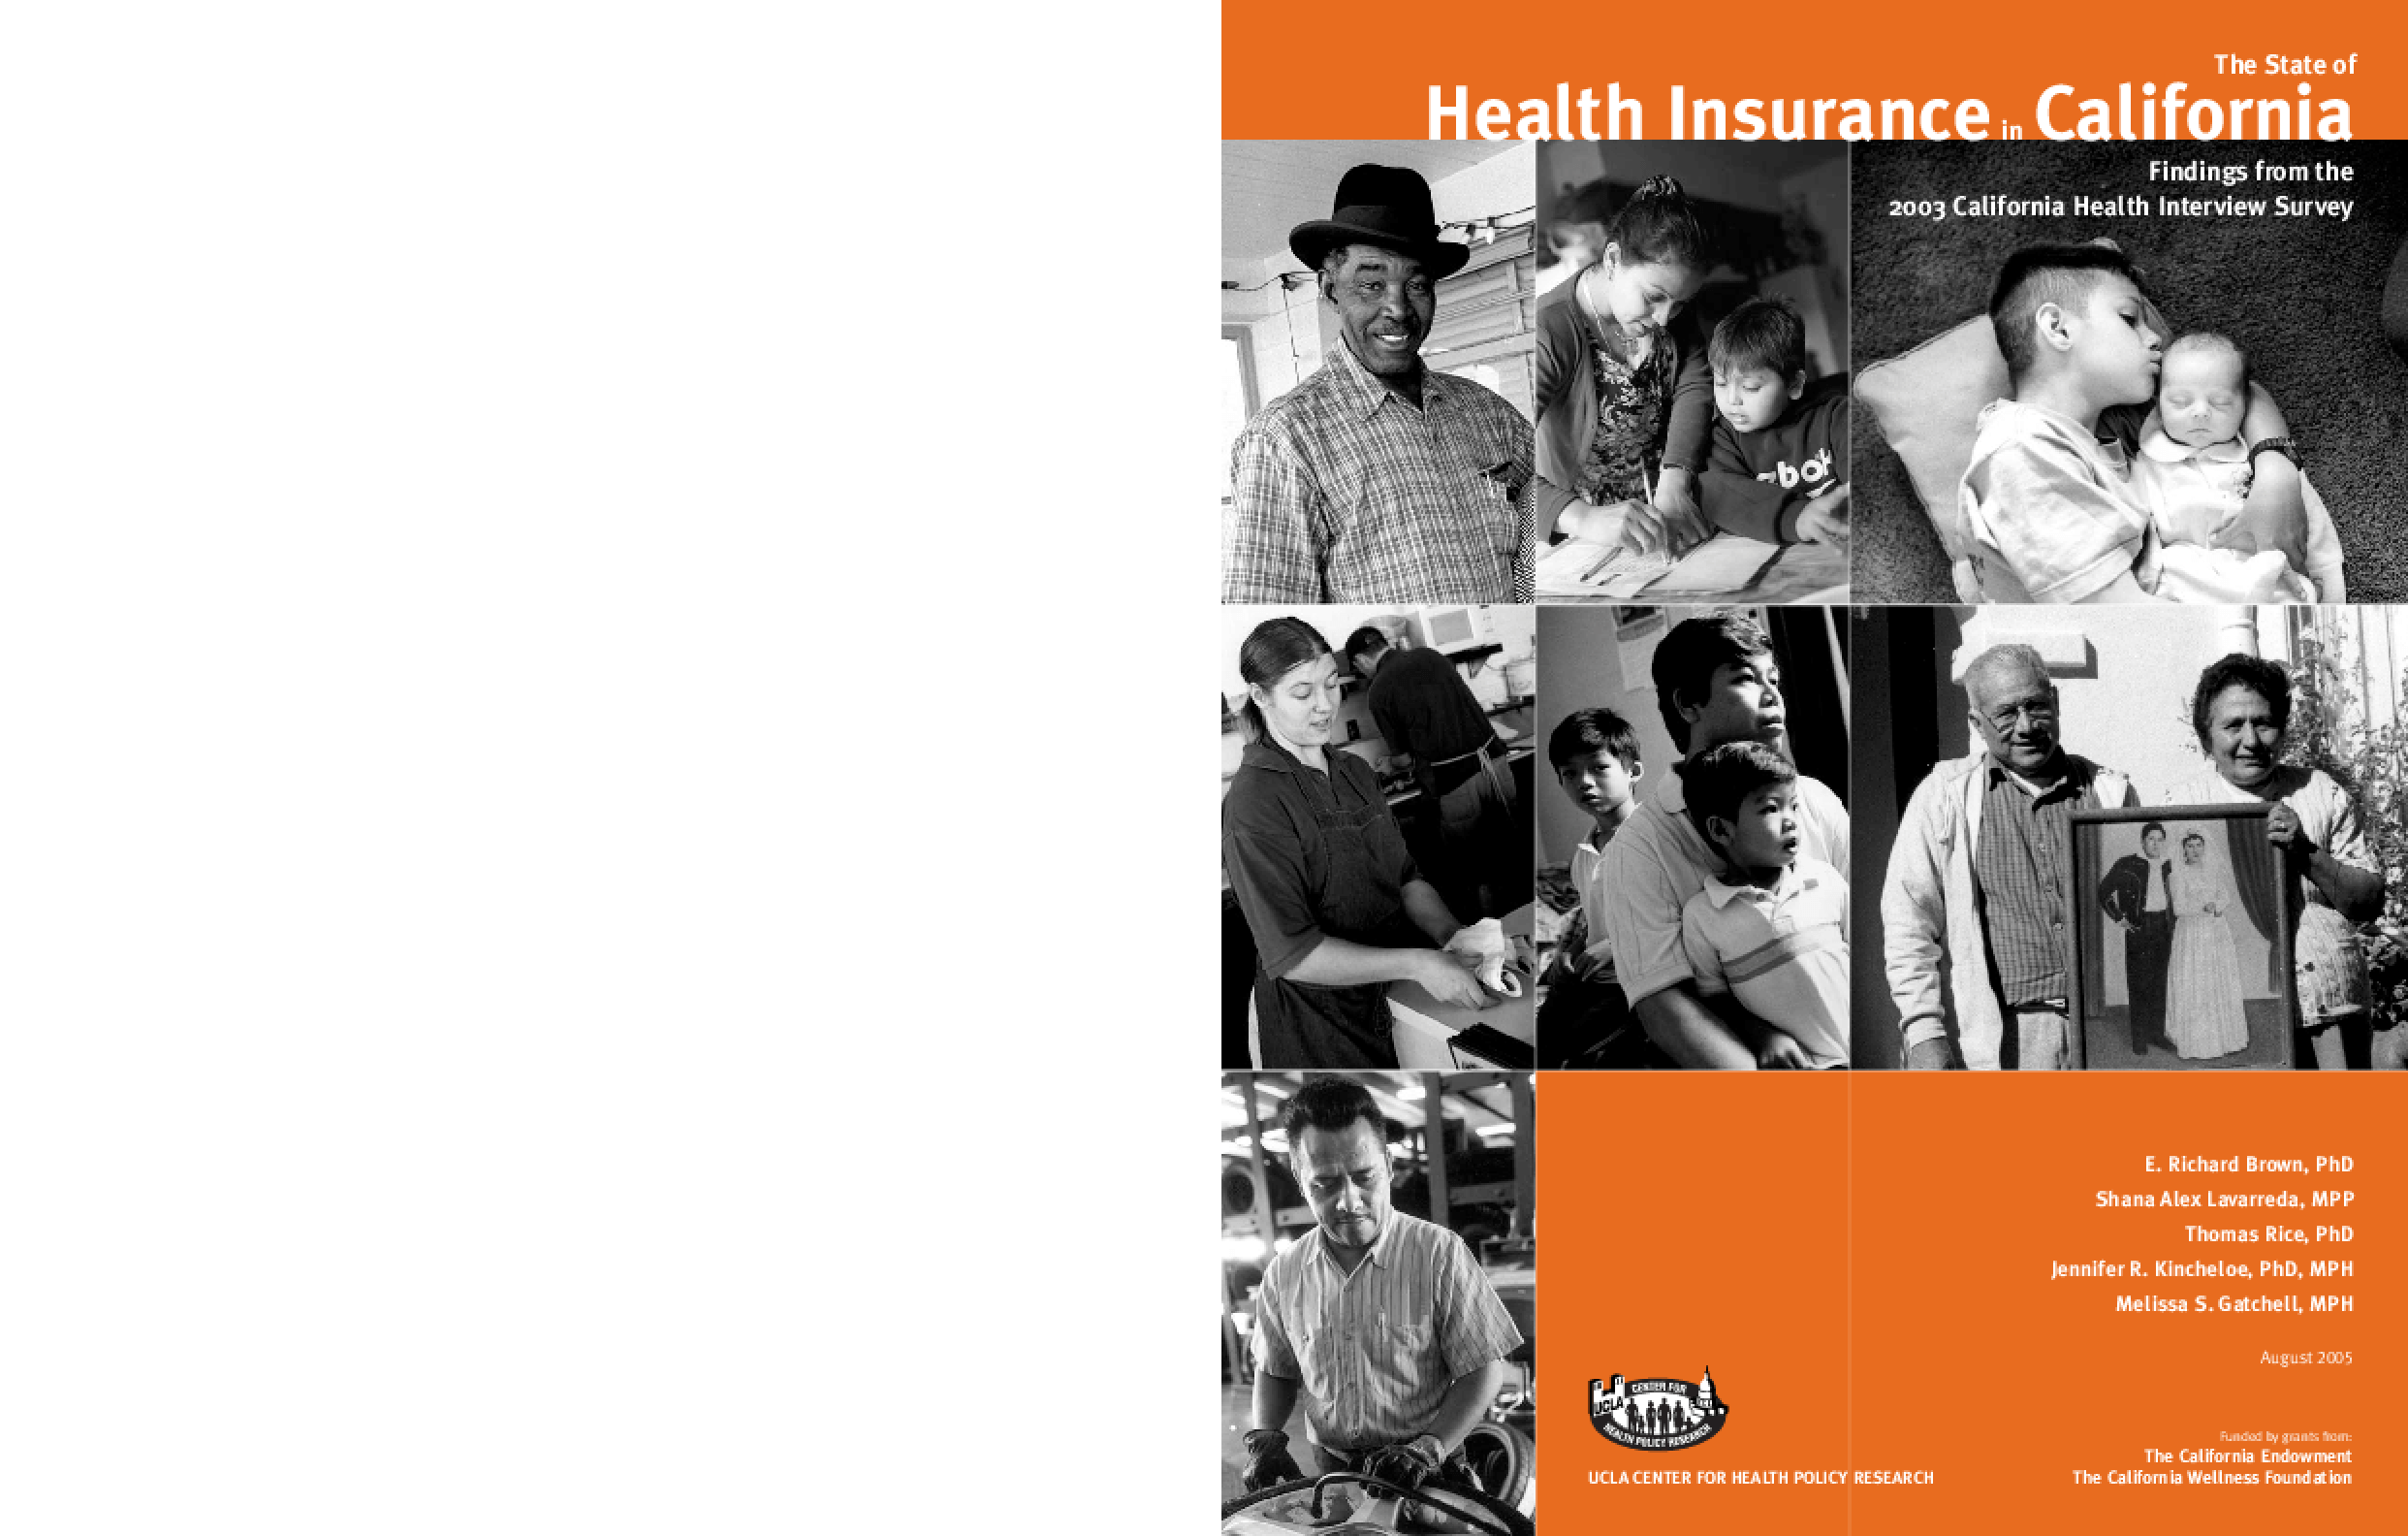 The State of Health Insurance in California: Findings From the 2003 California Health Interview Survey